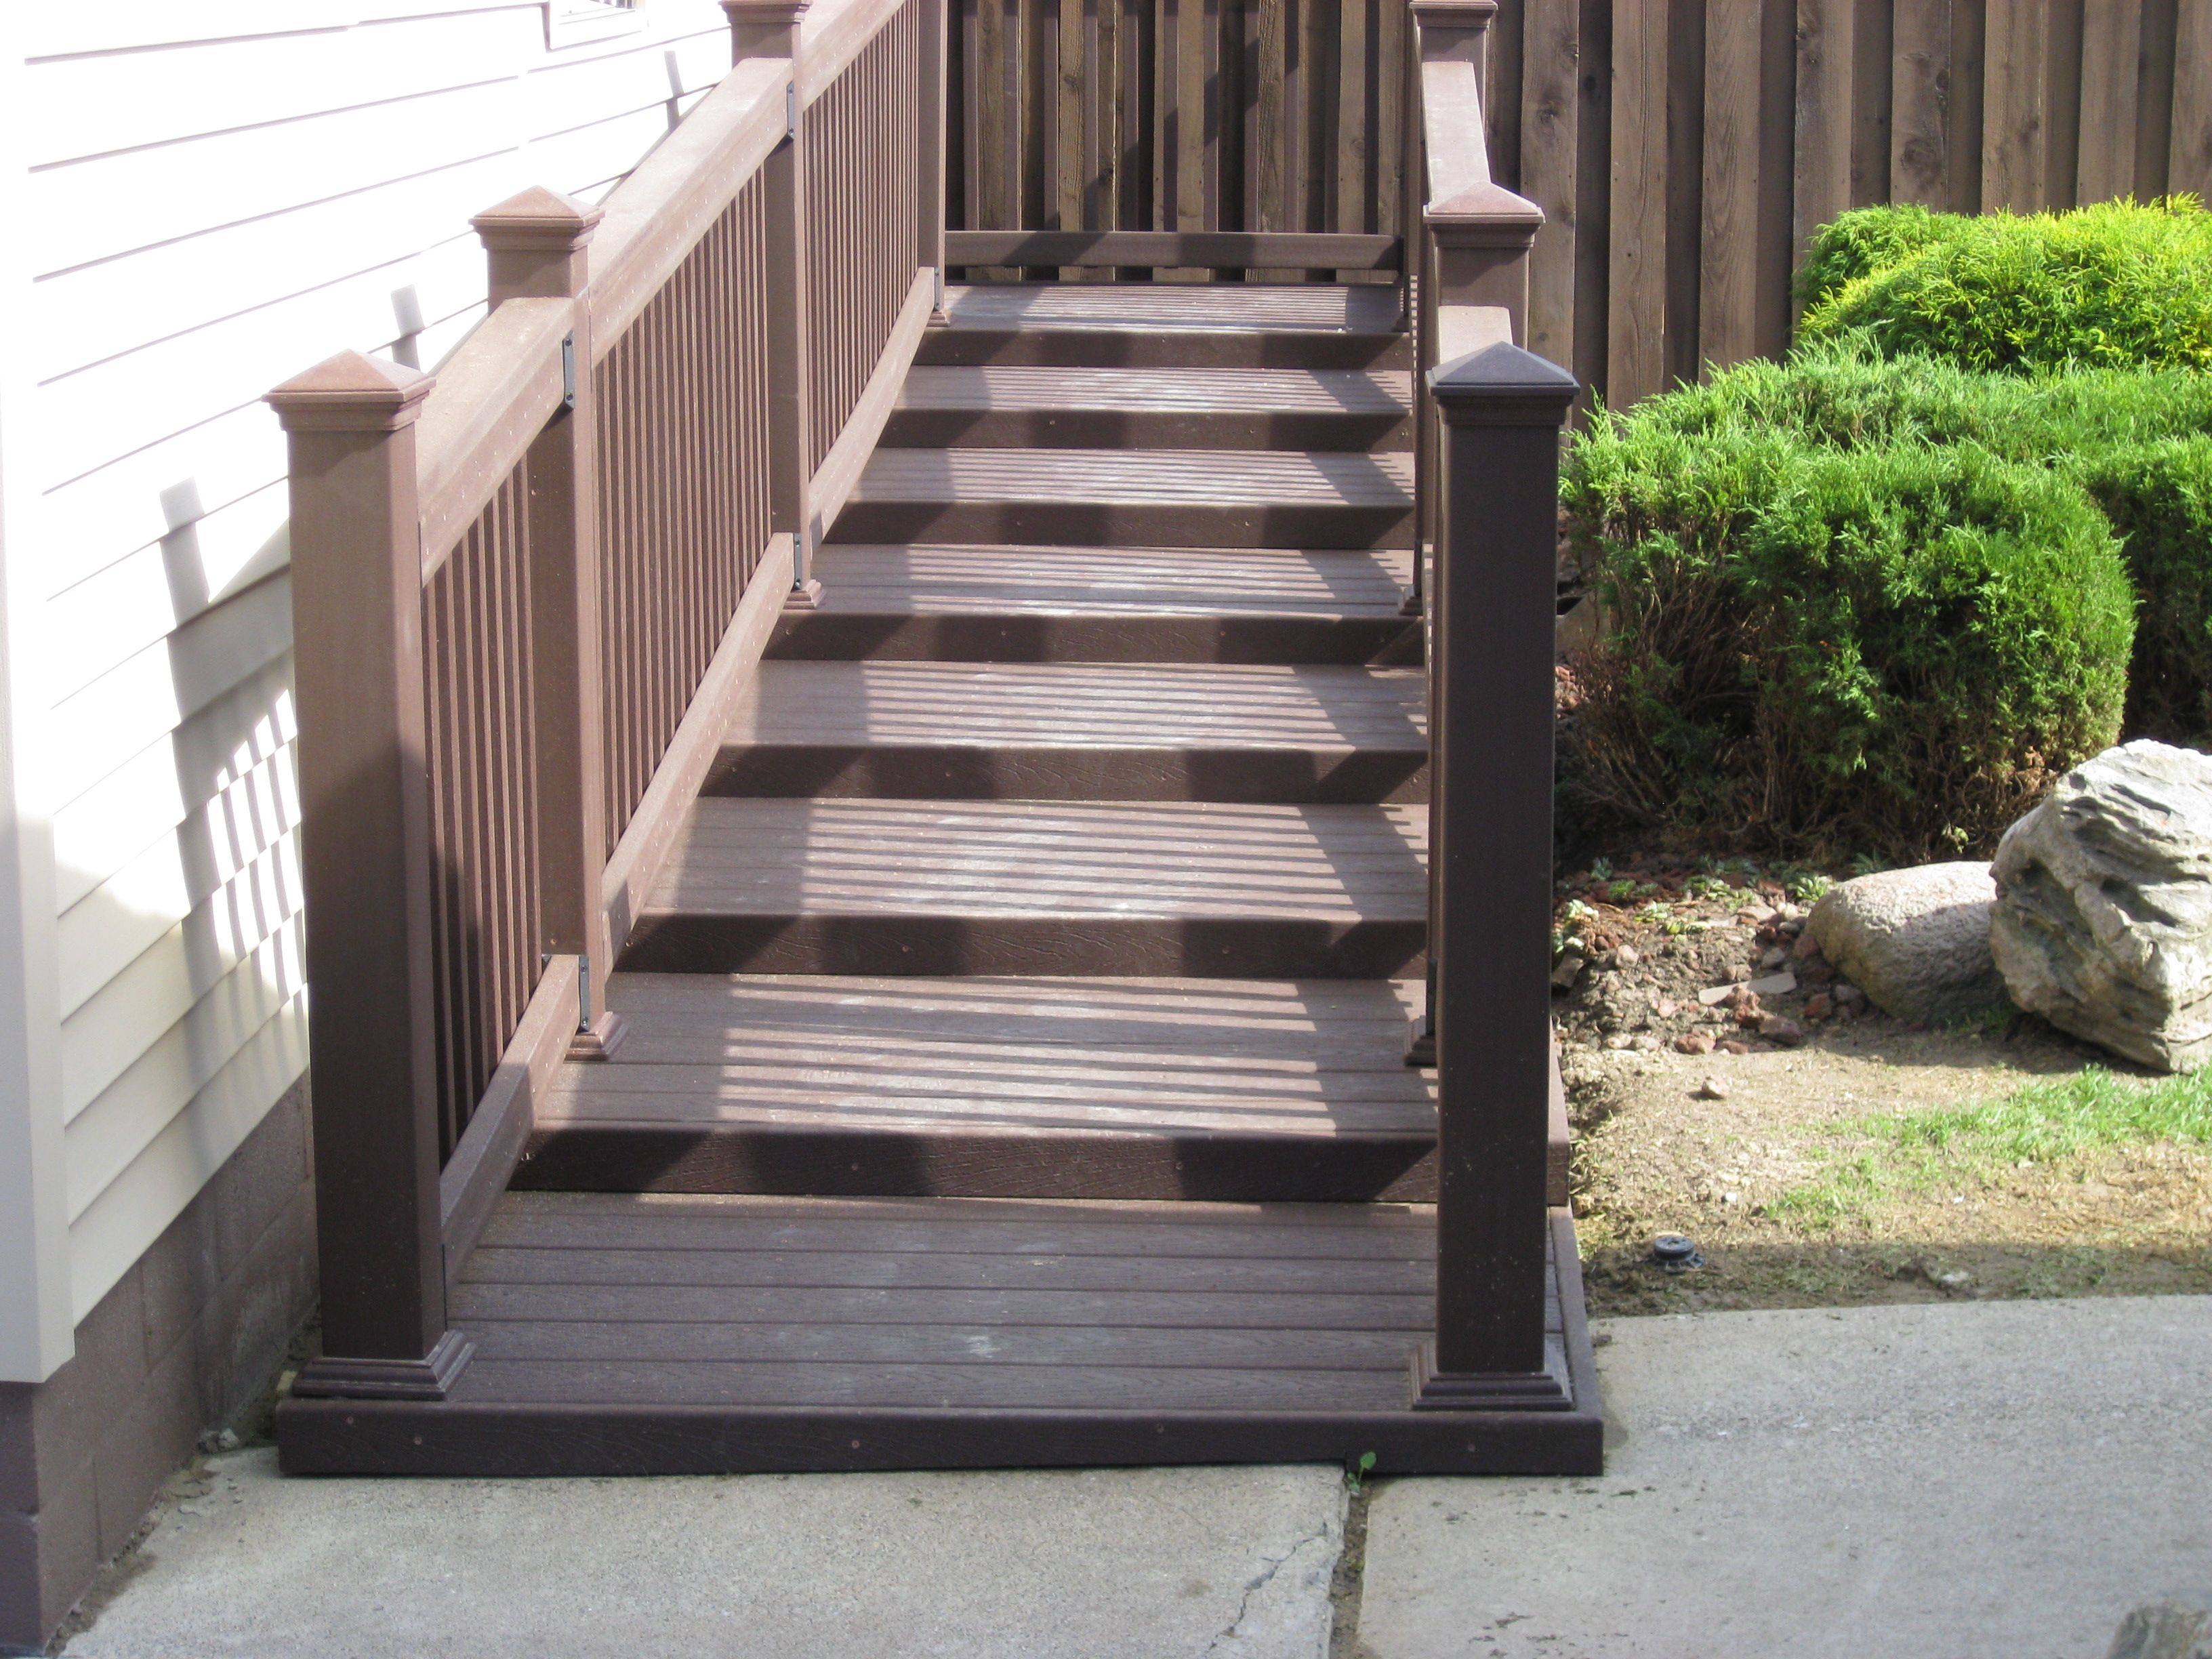 Pin by Nancy Smith on House ideas | Outdoor stairs, Ramp ... Ramp For Homes Stairs Designs on walkers for stairs, wheelchairs for stairs, power chairs for stairs, portable ramps for stairs,